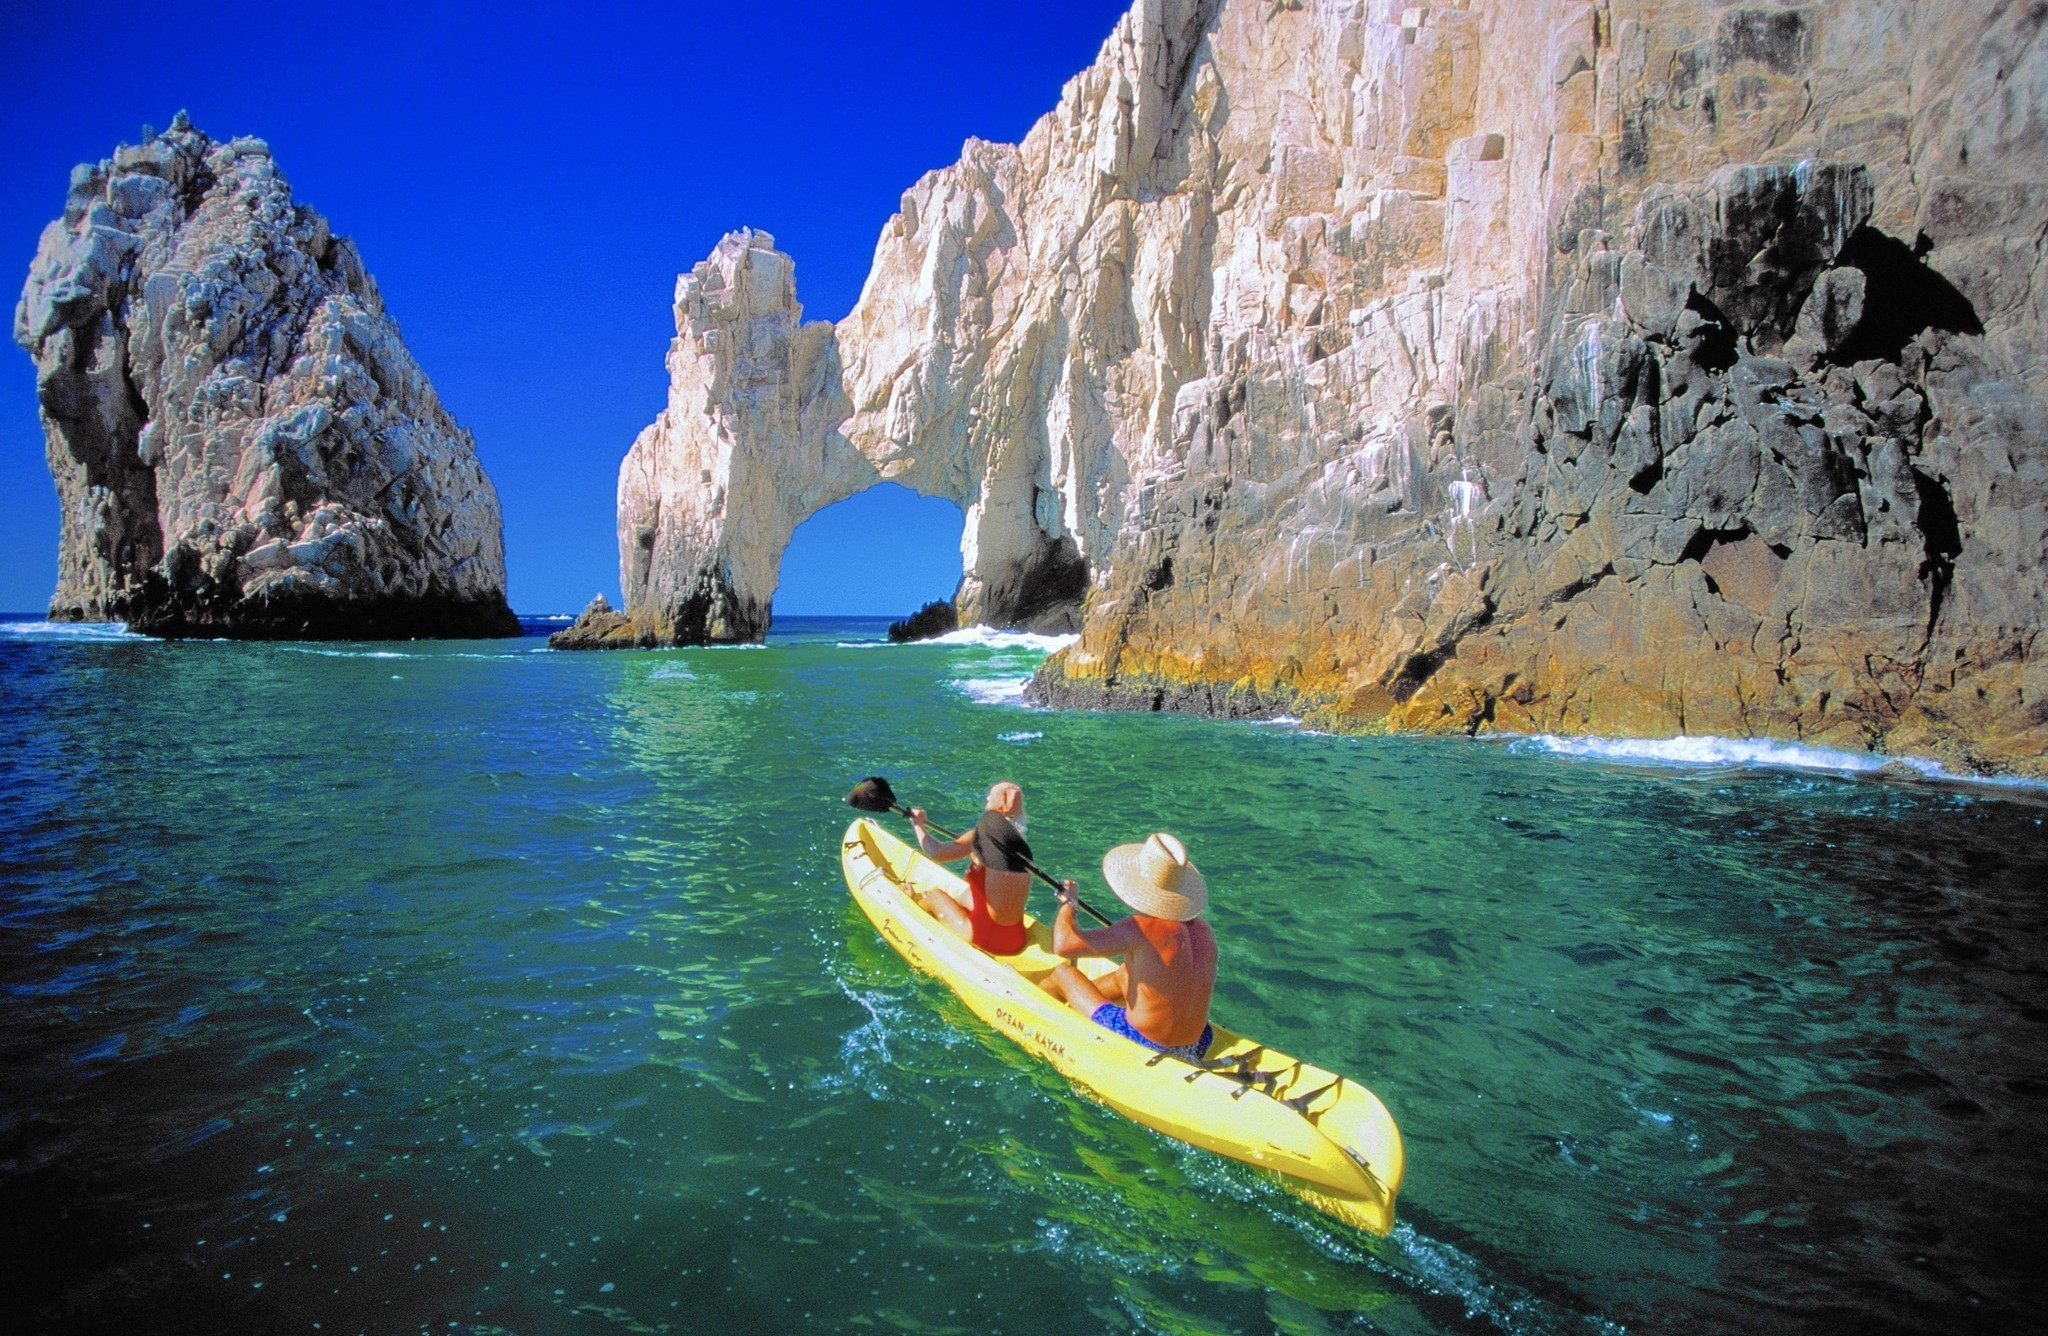 destinations travel travelers sights los lucas san cabo tr